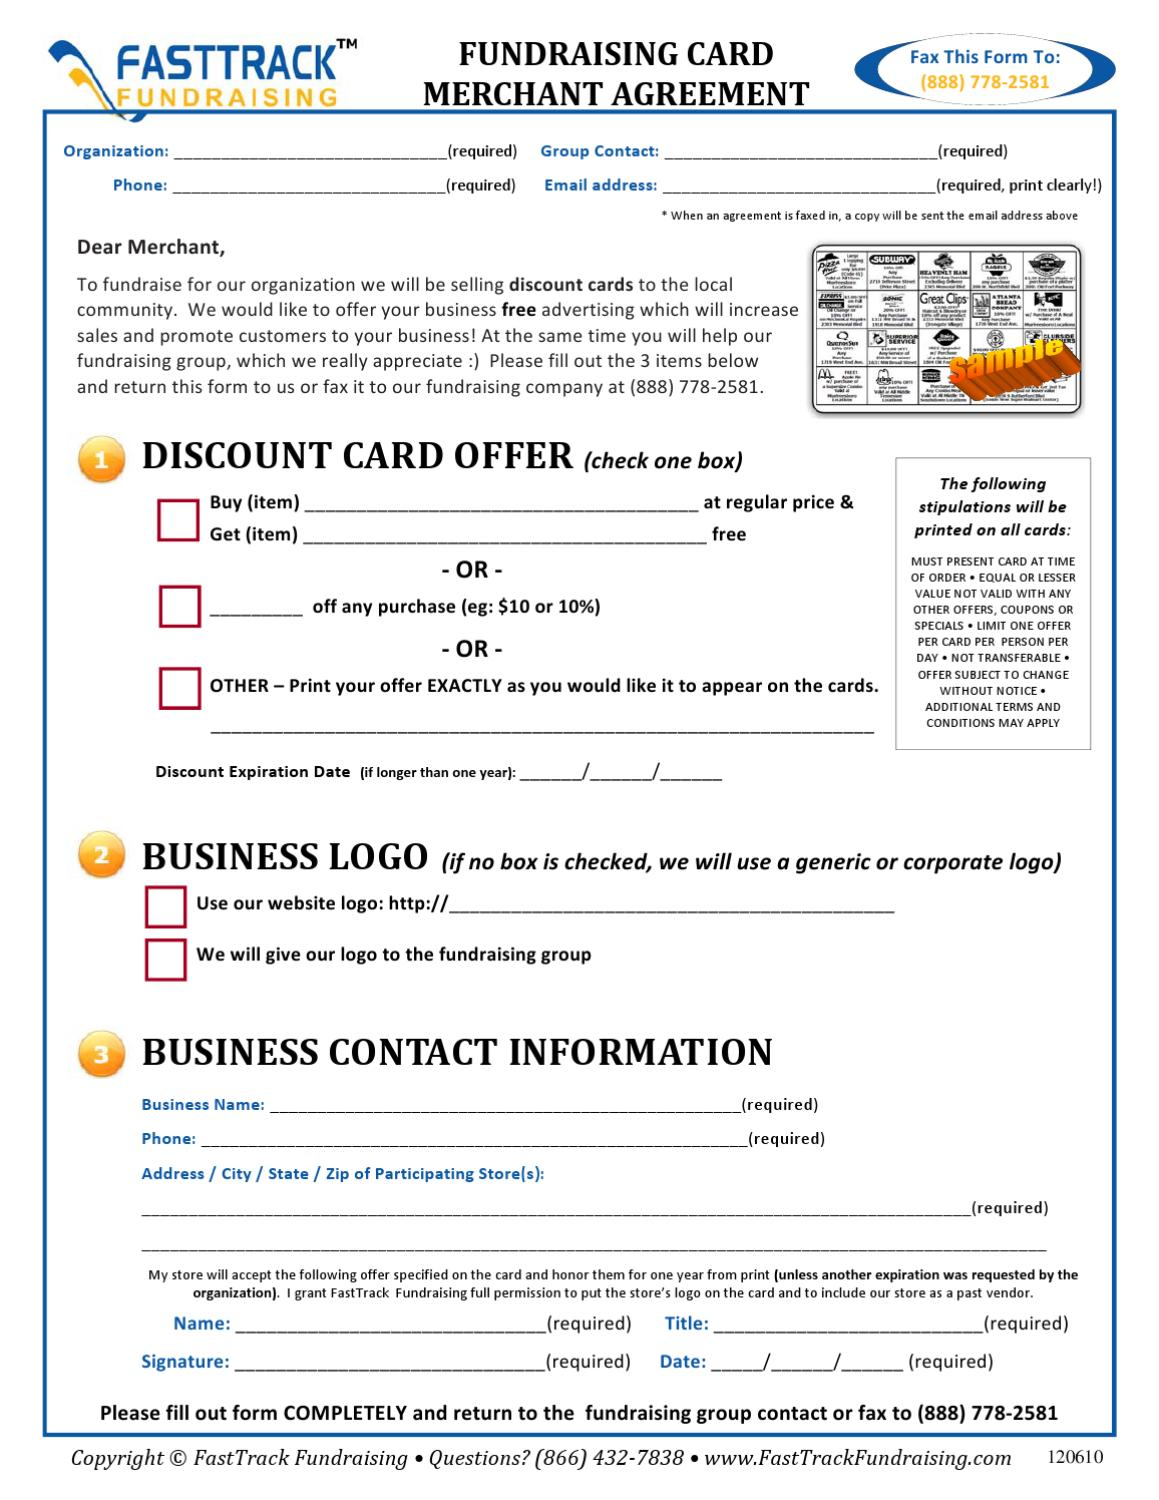 Discount Card Merchant Agreement by Harold Tan - issuu